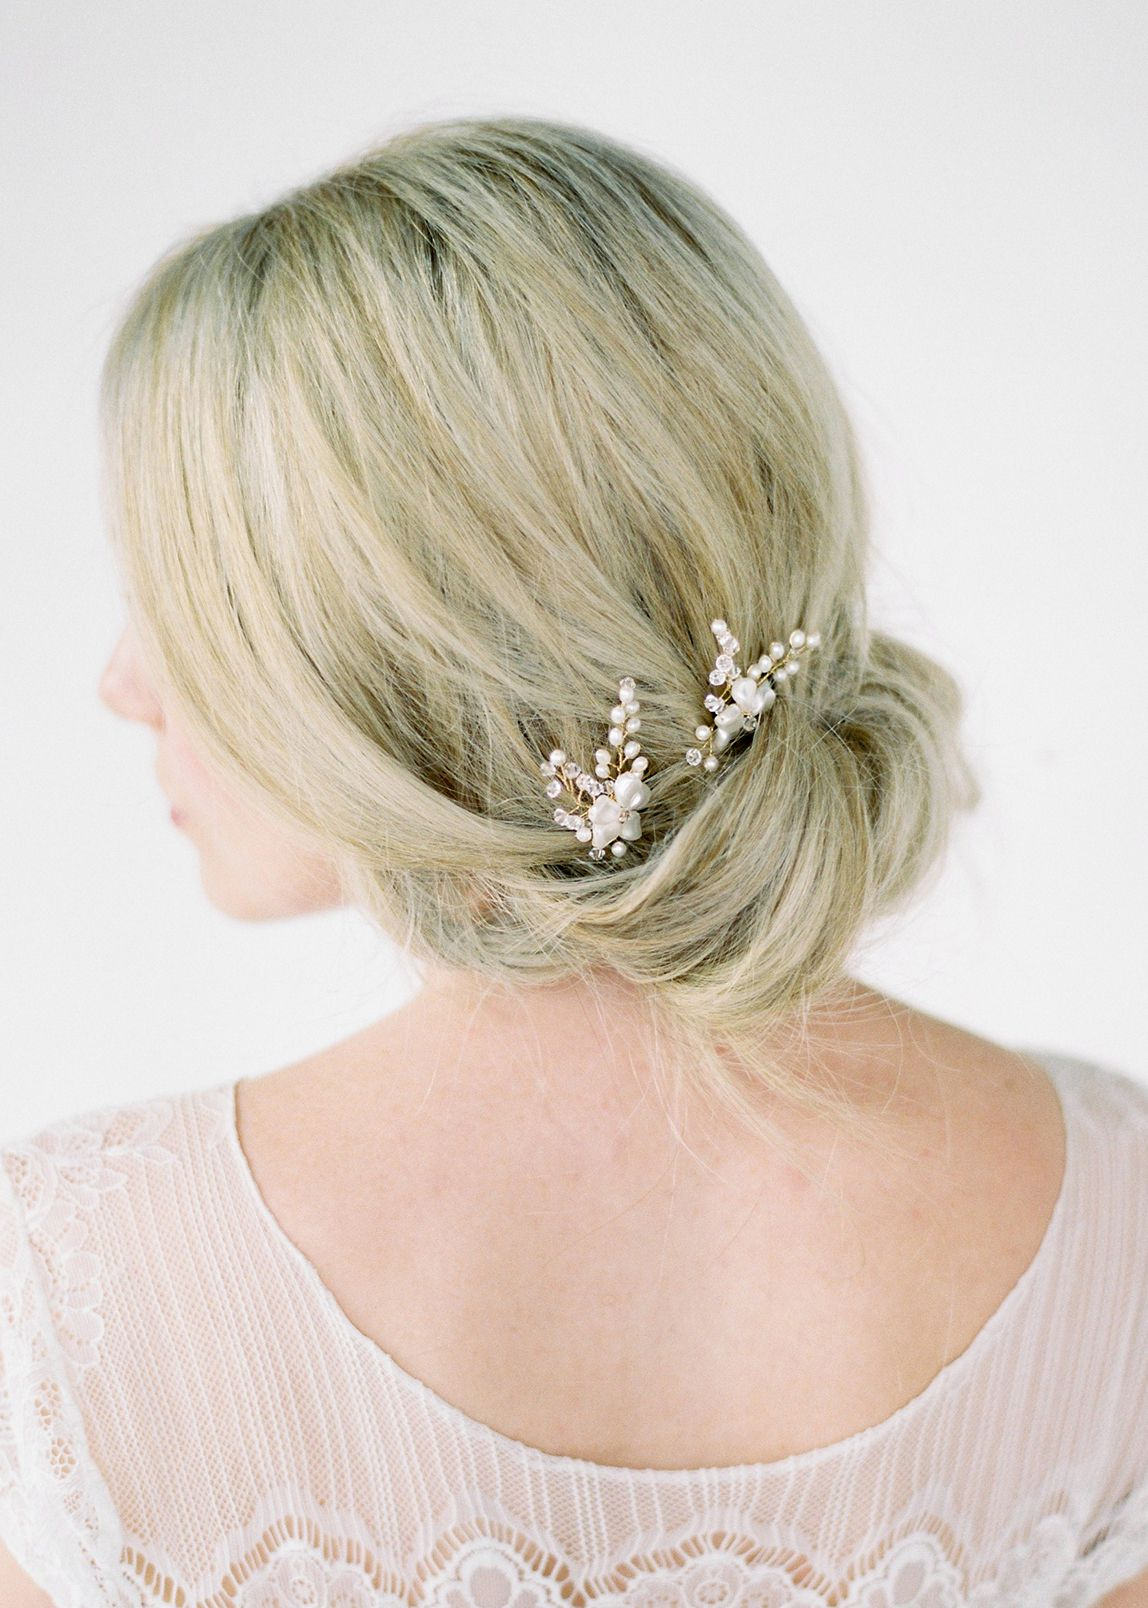 products home headpieces laura wedding hair pieces